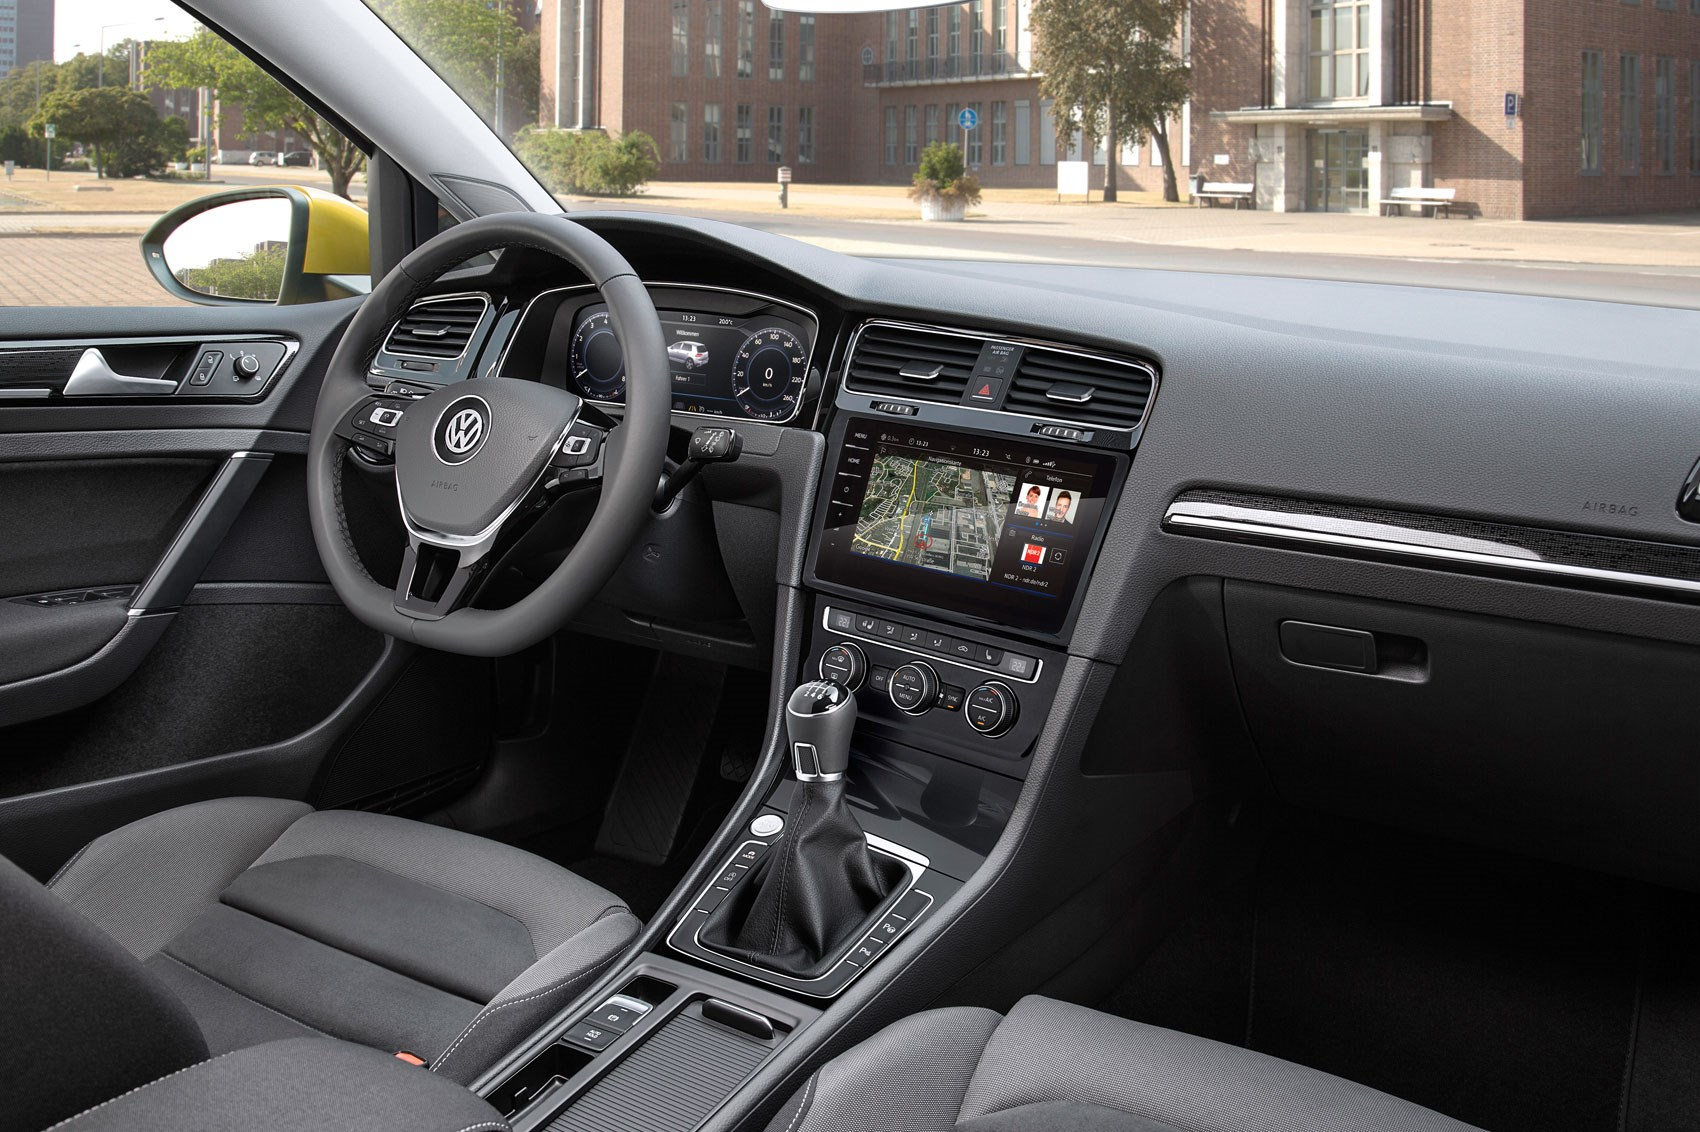 Seven Things You Need To Know About The Facelifted 2017 Vw Golf Hooking Up Column Switch For Signal Lights And Headlight Dimmer Volkswagen Mk7